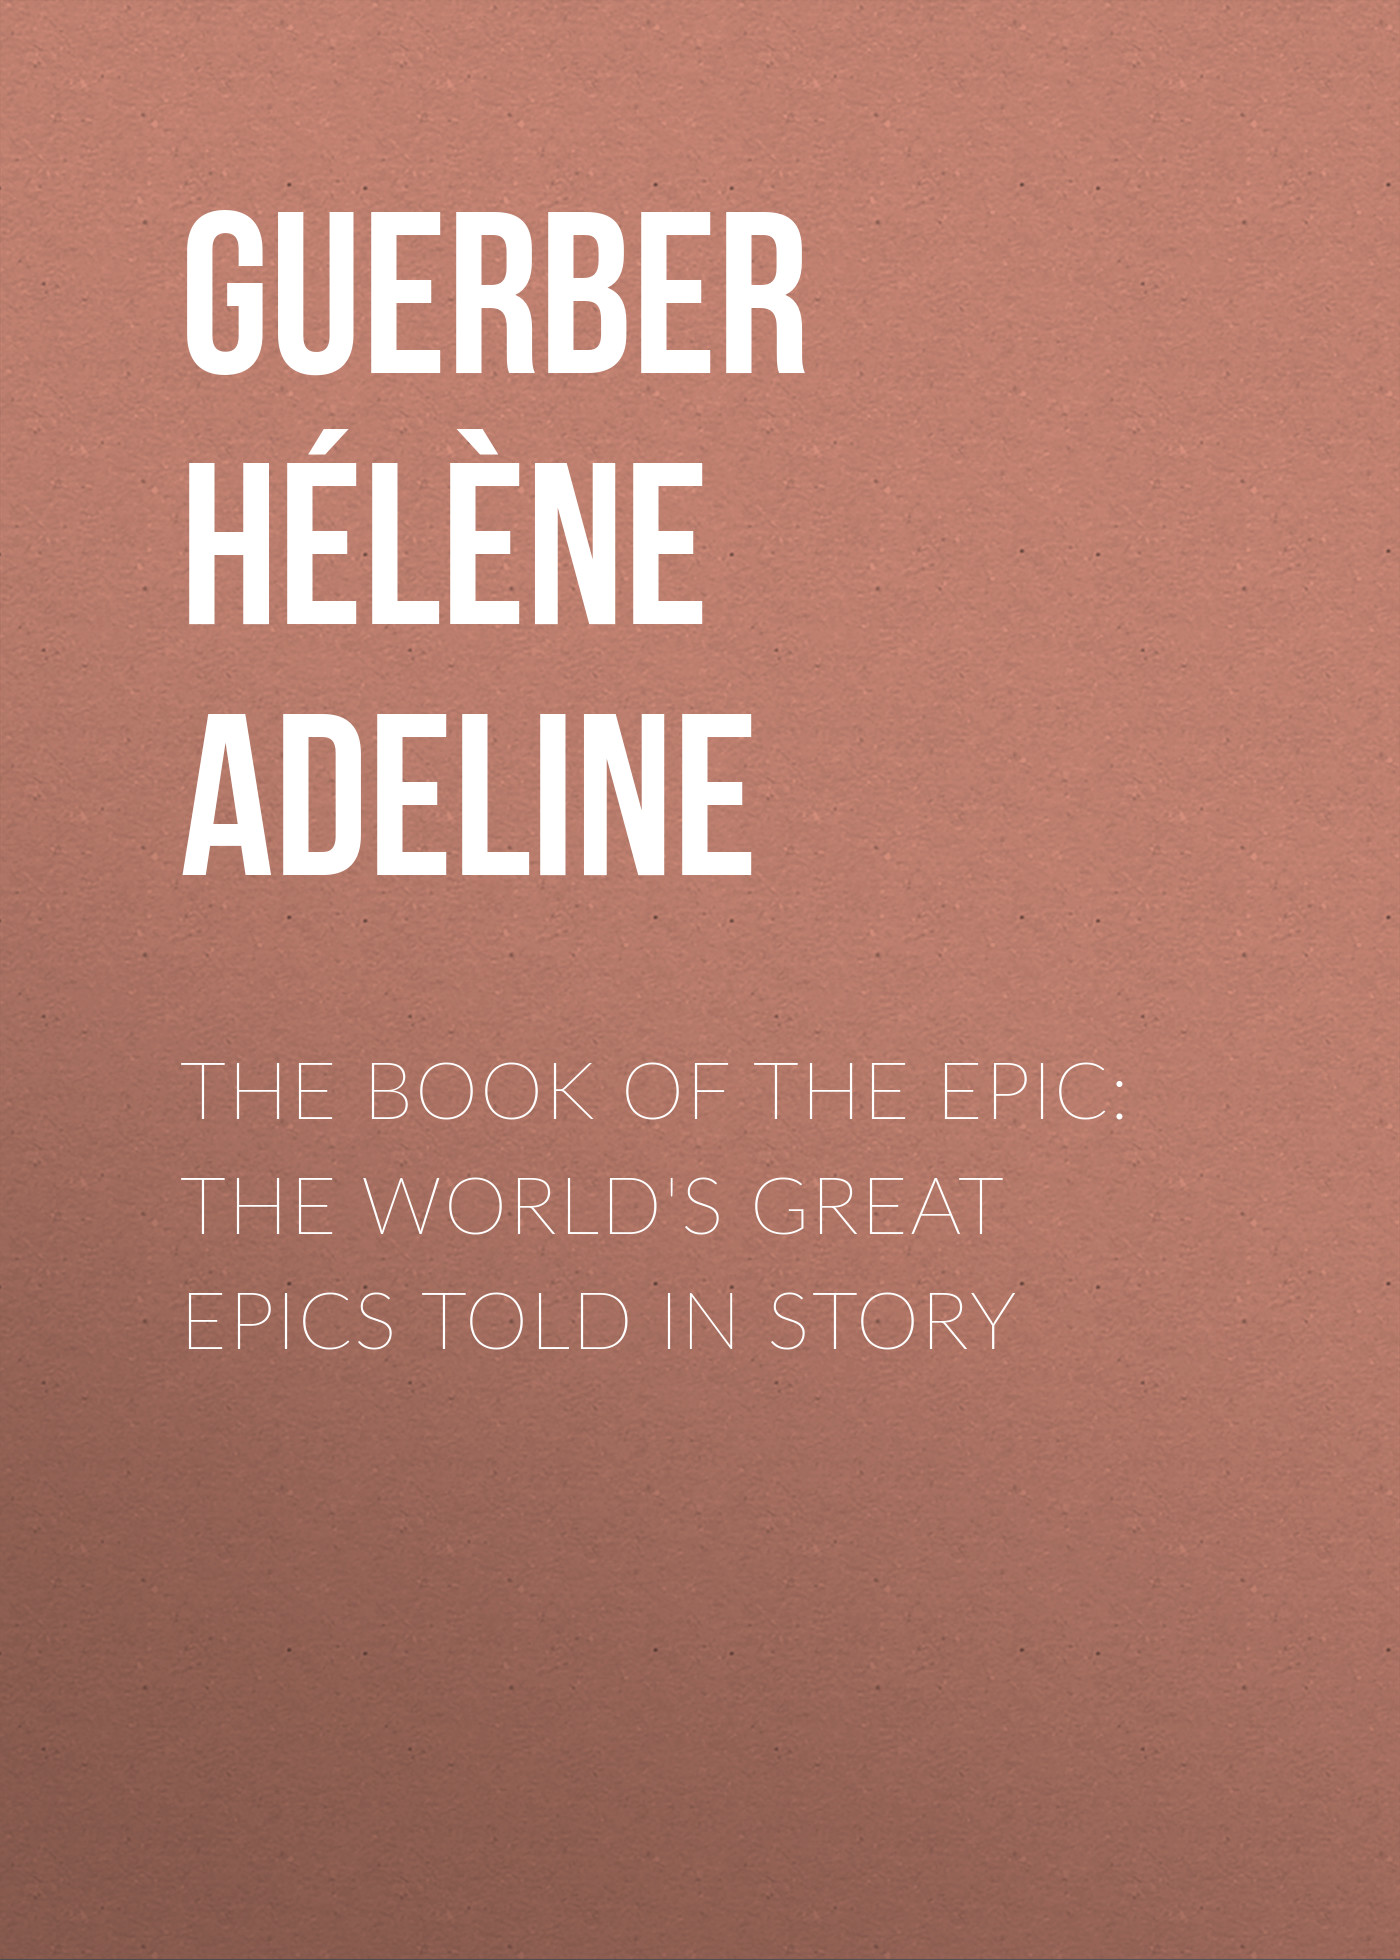 Guerber Hélène Adeline The Book of the Epic: The World's Great Epics Told in Story the hole story